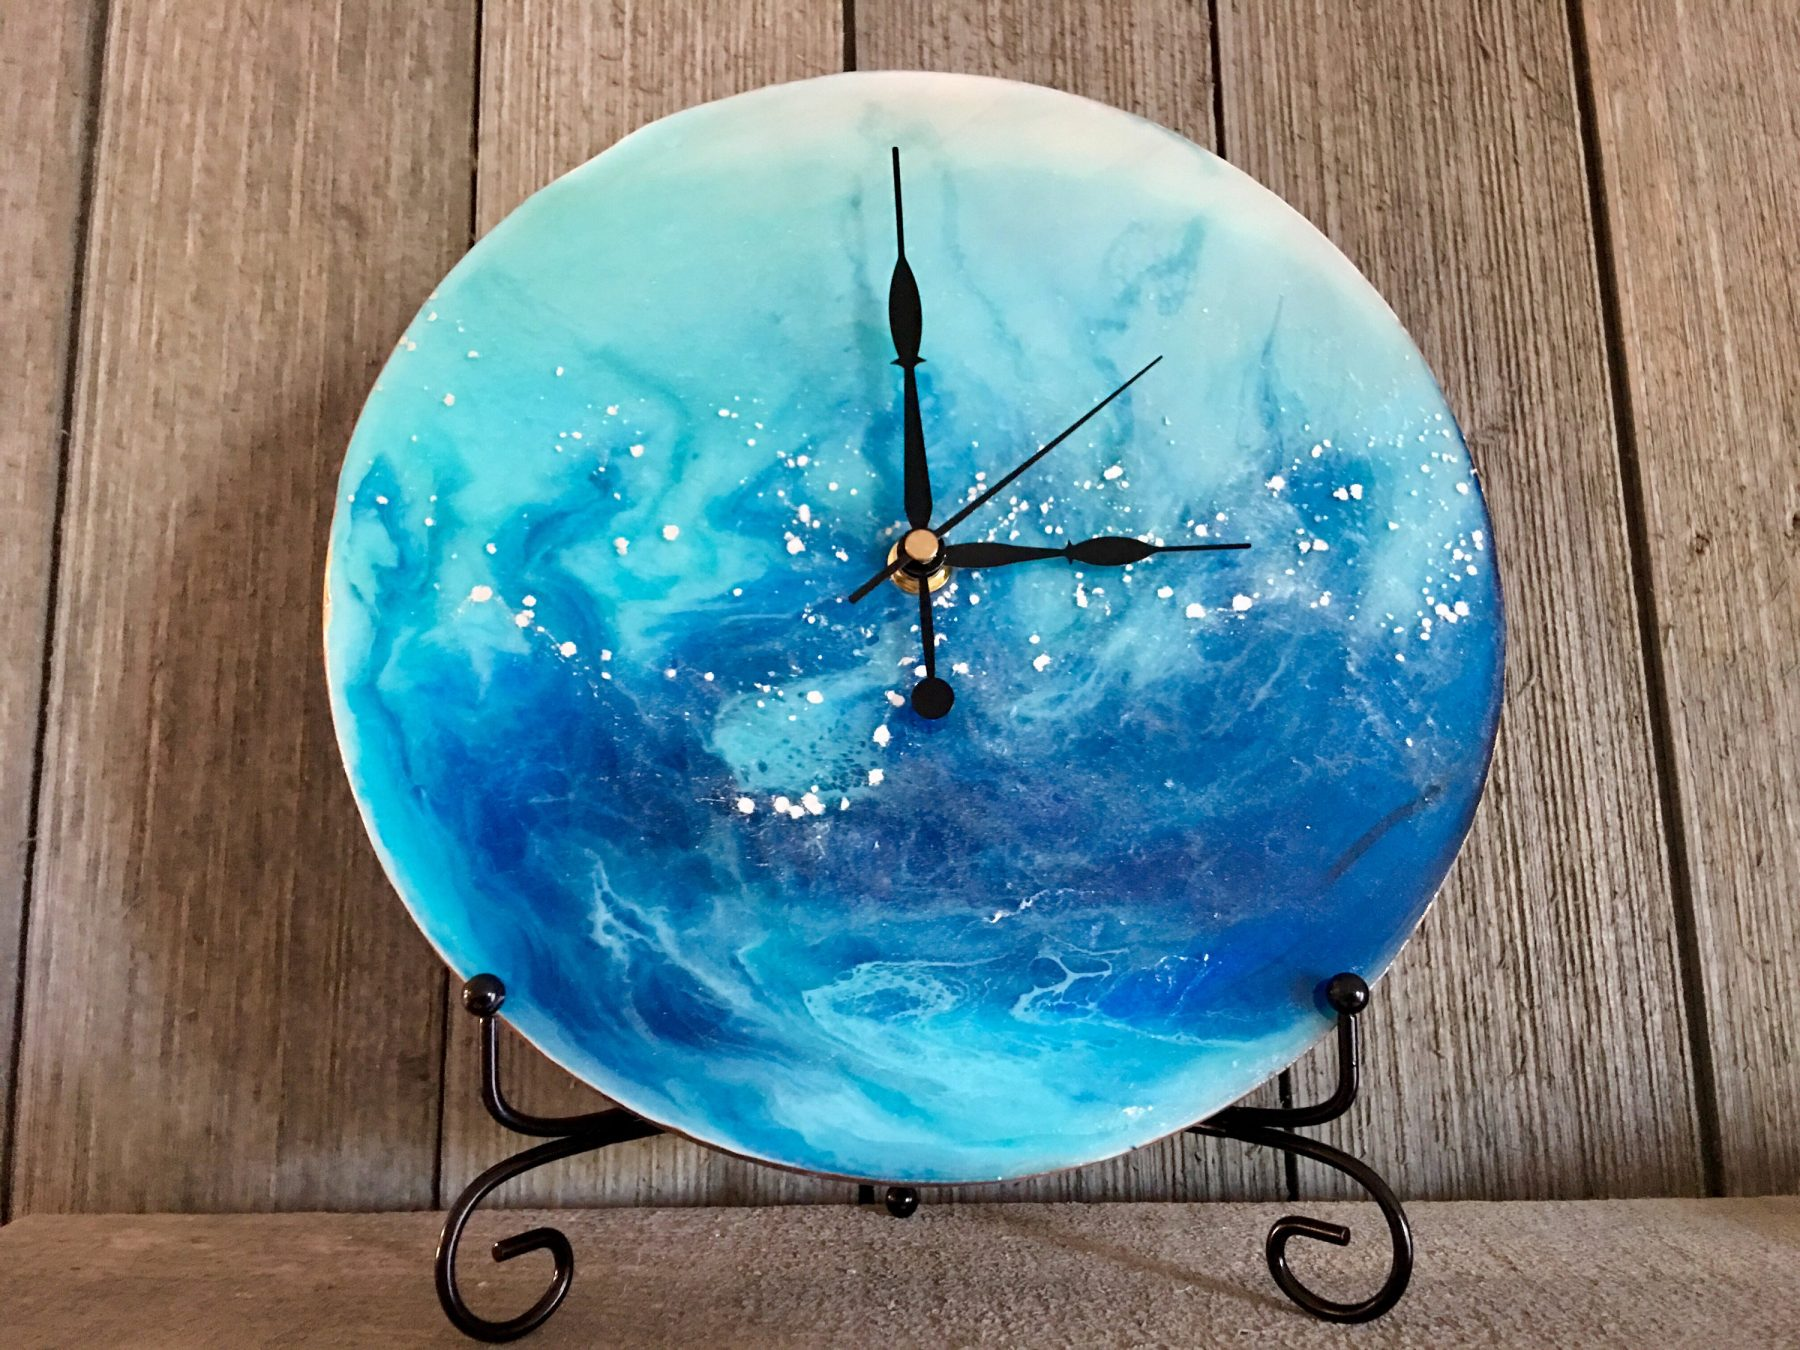 resin poured painting clock